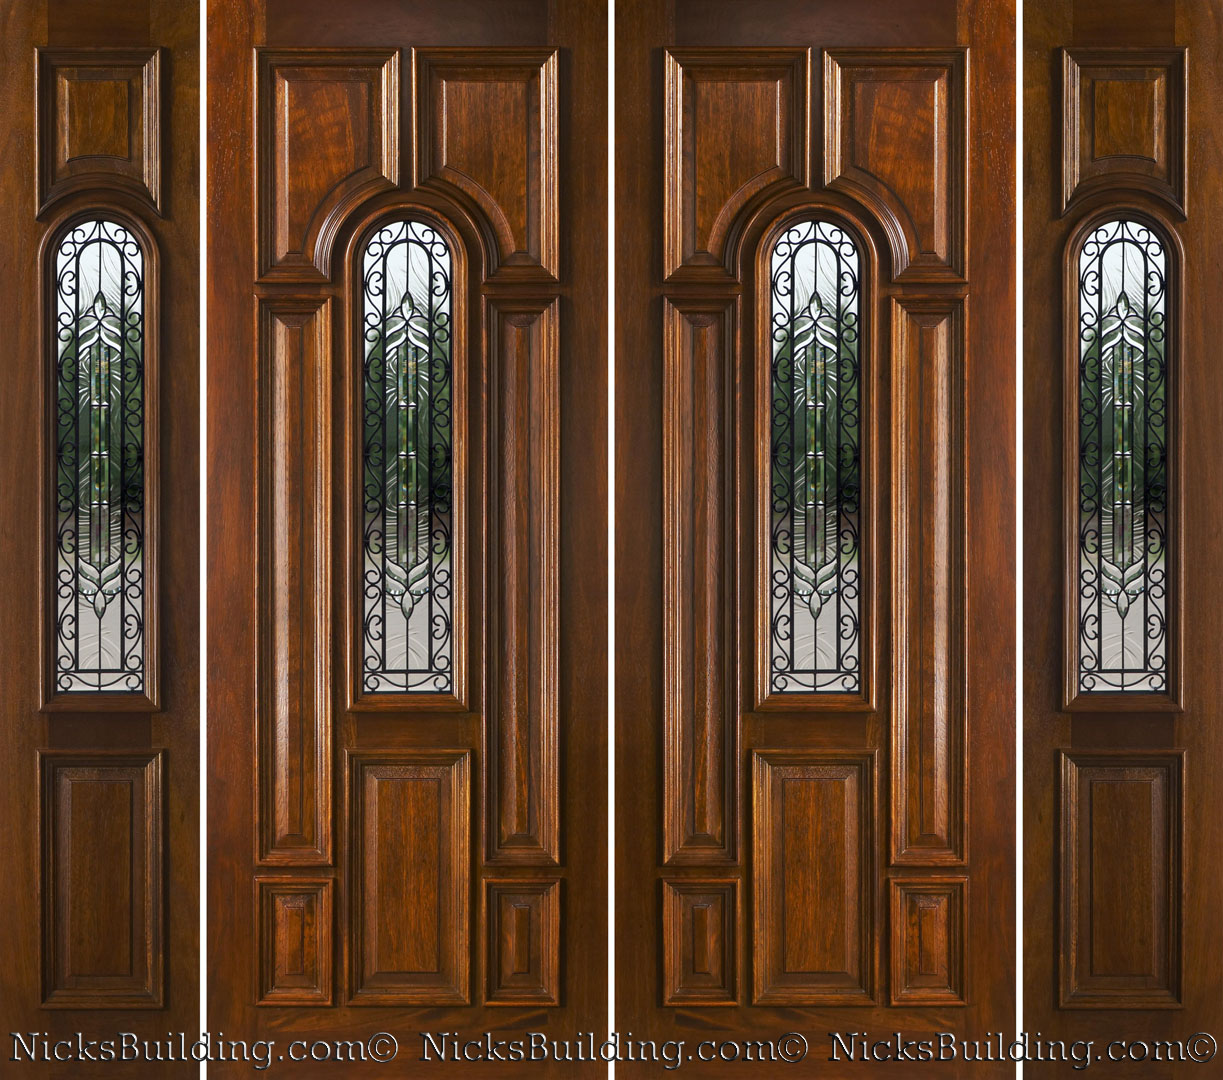 1080 #683B1D Mahogany Double Doors With Sidelights In 8ft Height picture/photo 8ft Entry Doors 42491223